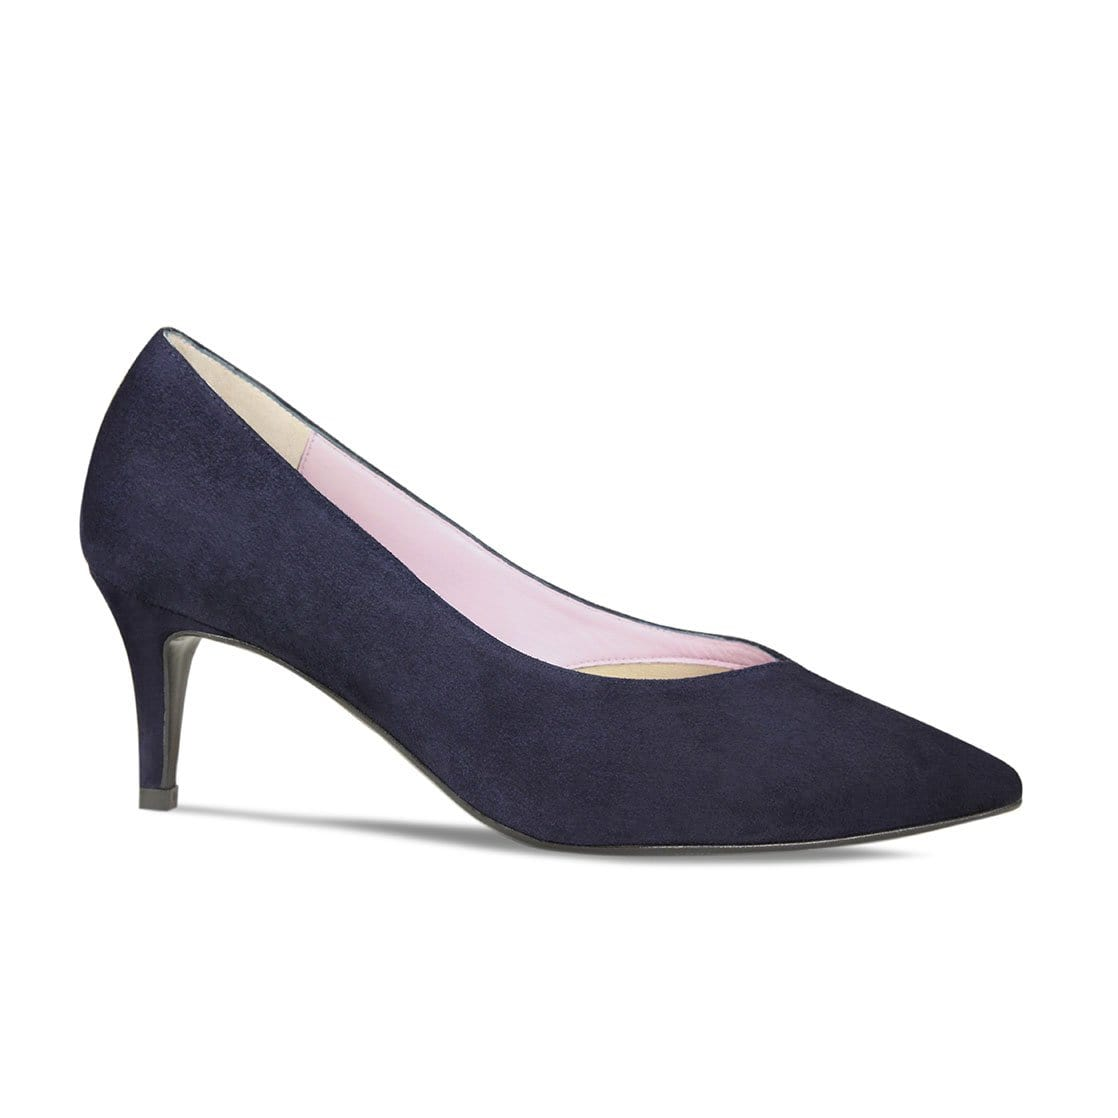 Navy Suede Mid-Heel Pumps